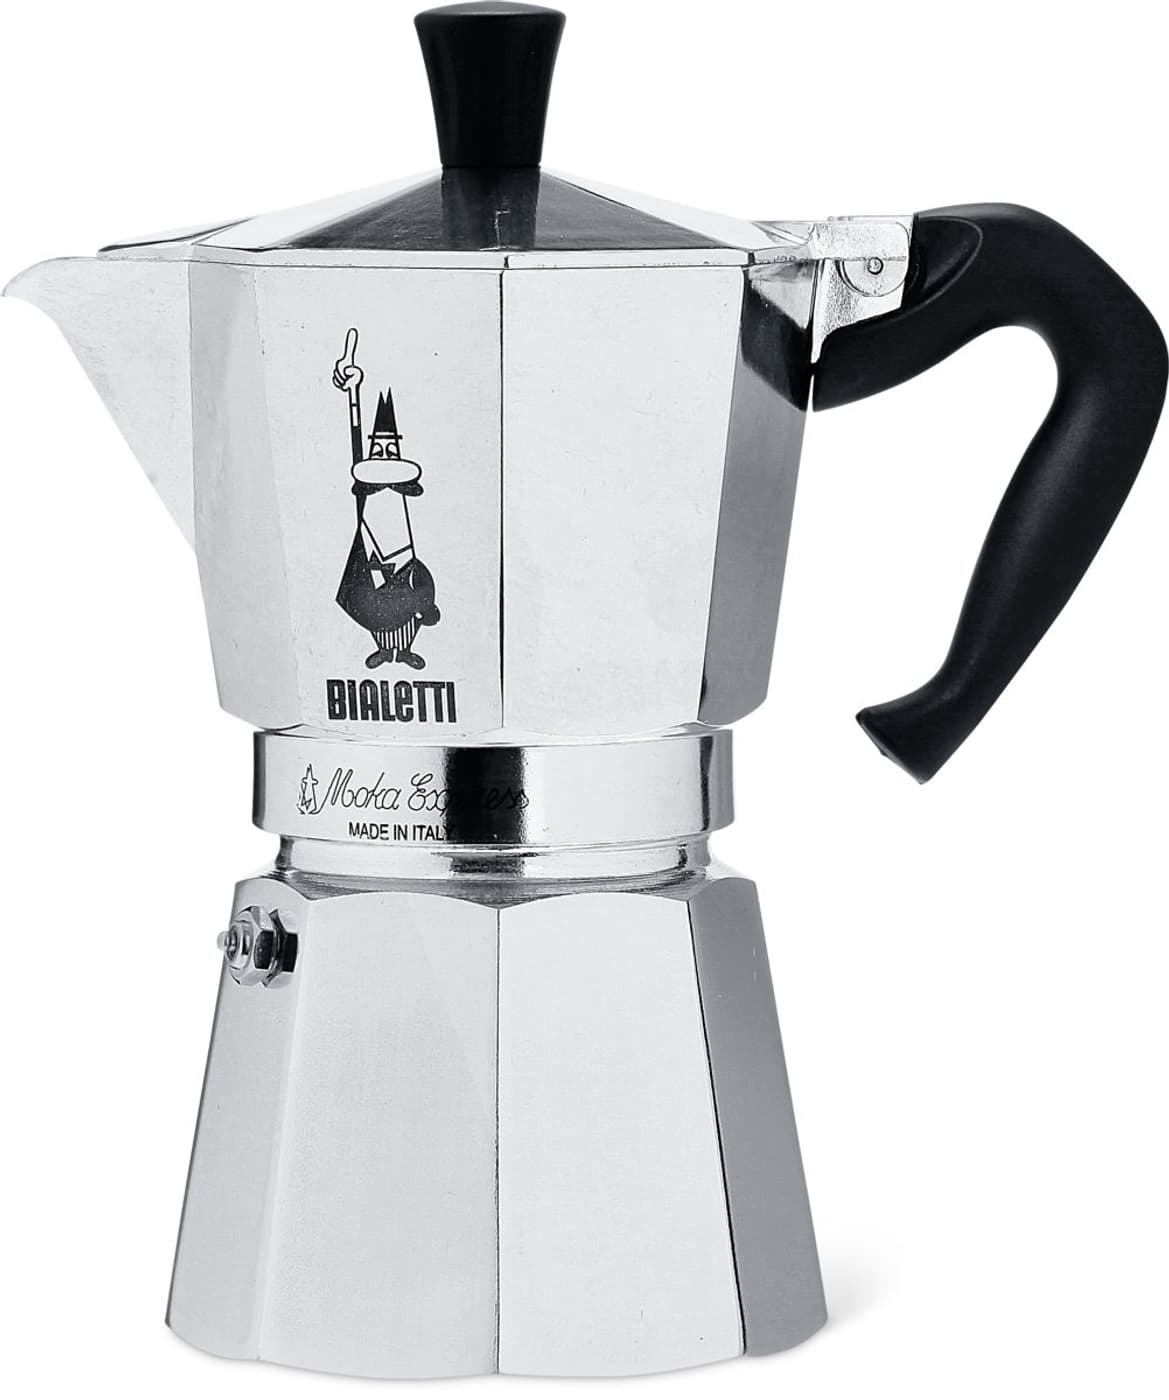 bialetti machine caf bialetti argent migros. Black Bedroom Furniture Sets. Home Design Ideas